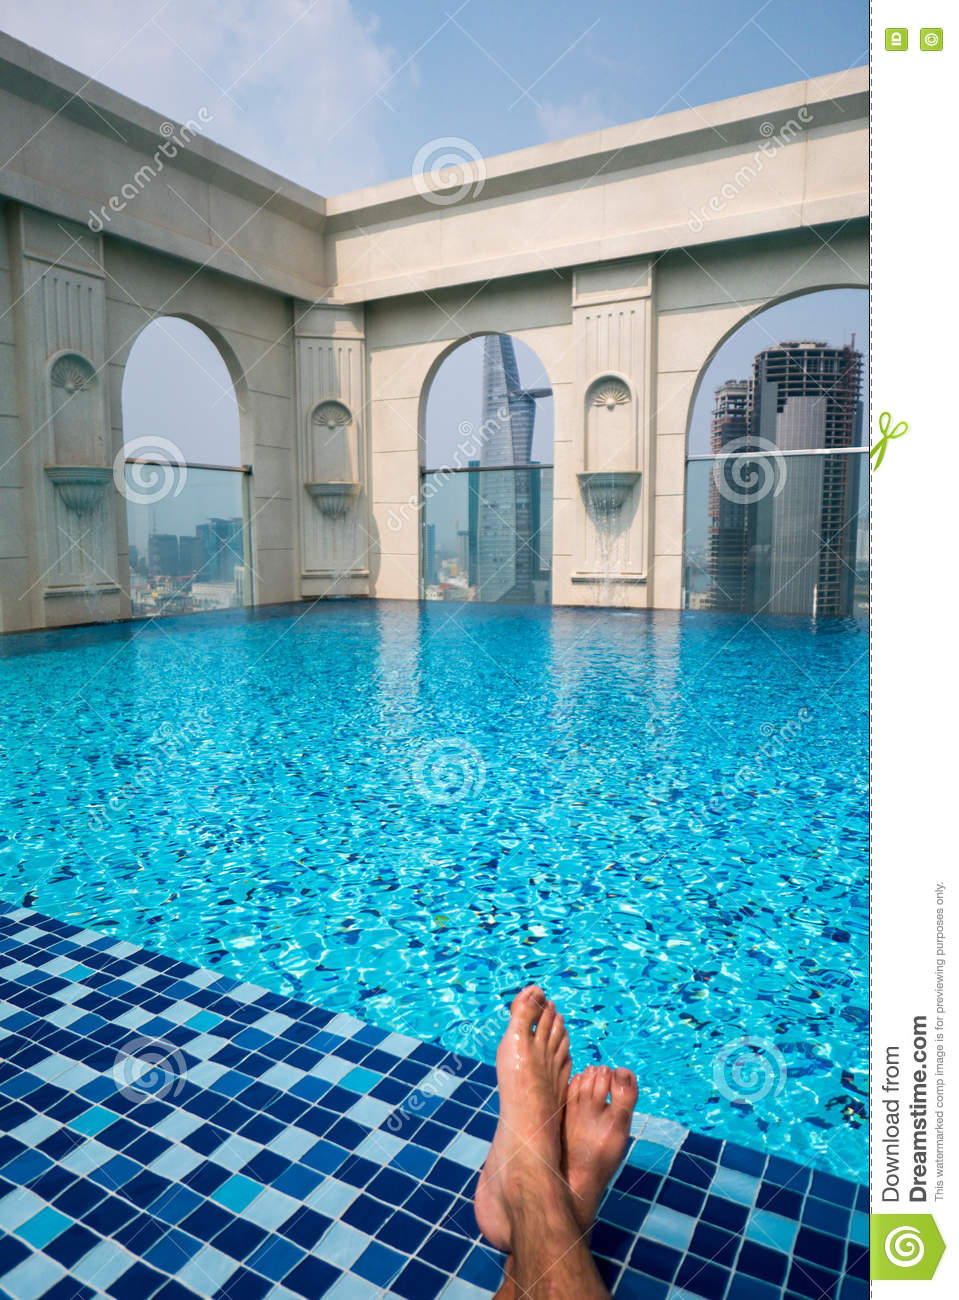 Feet Over The Sparkling Pool On Top Of Building With Saigon Aeri Stock Photo Image 72221726